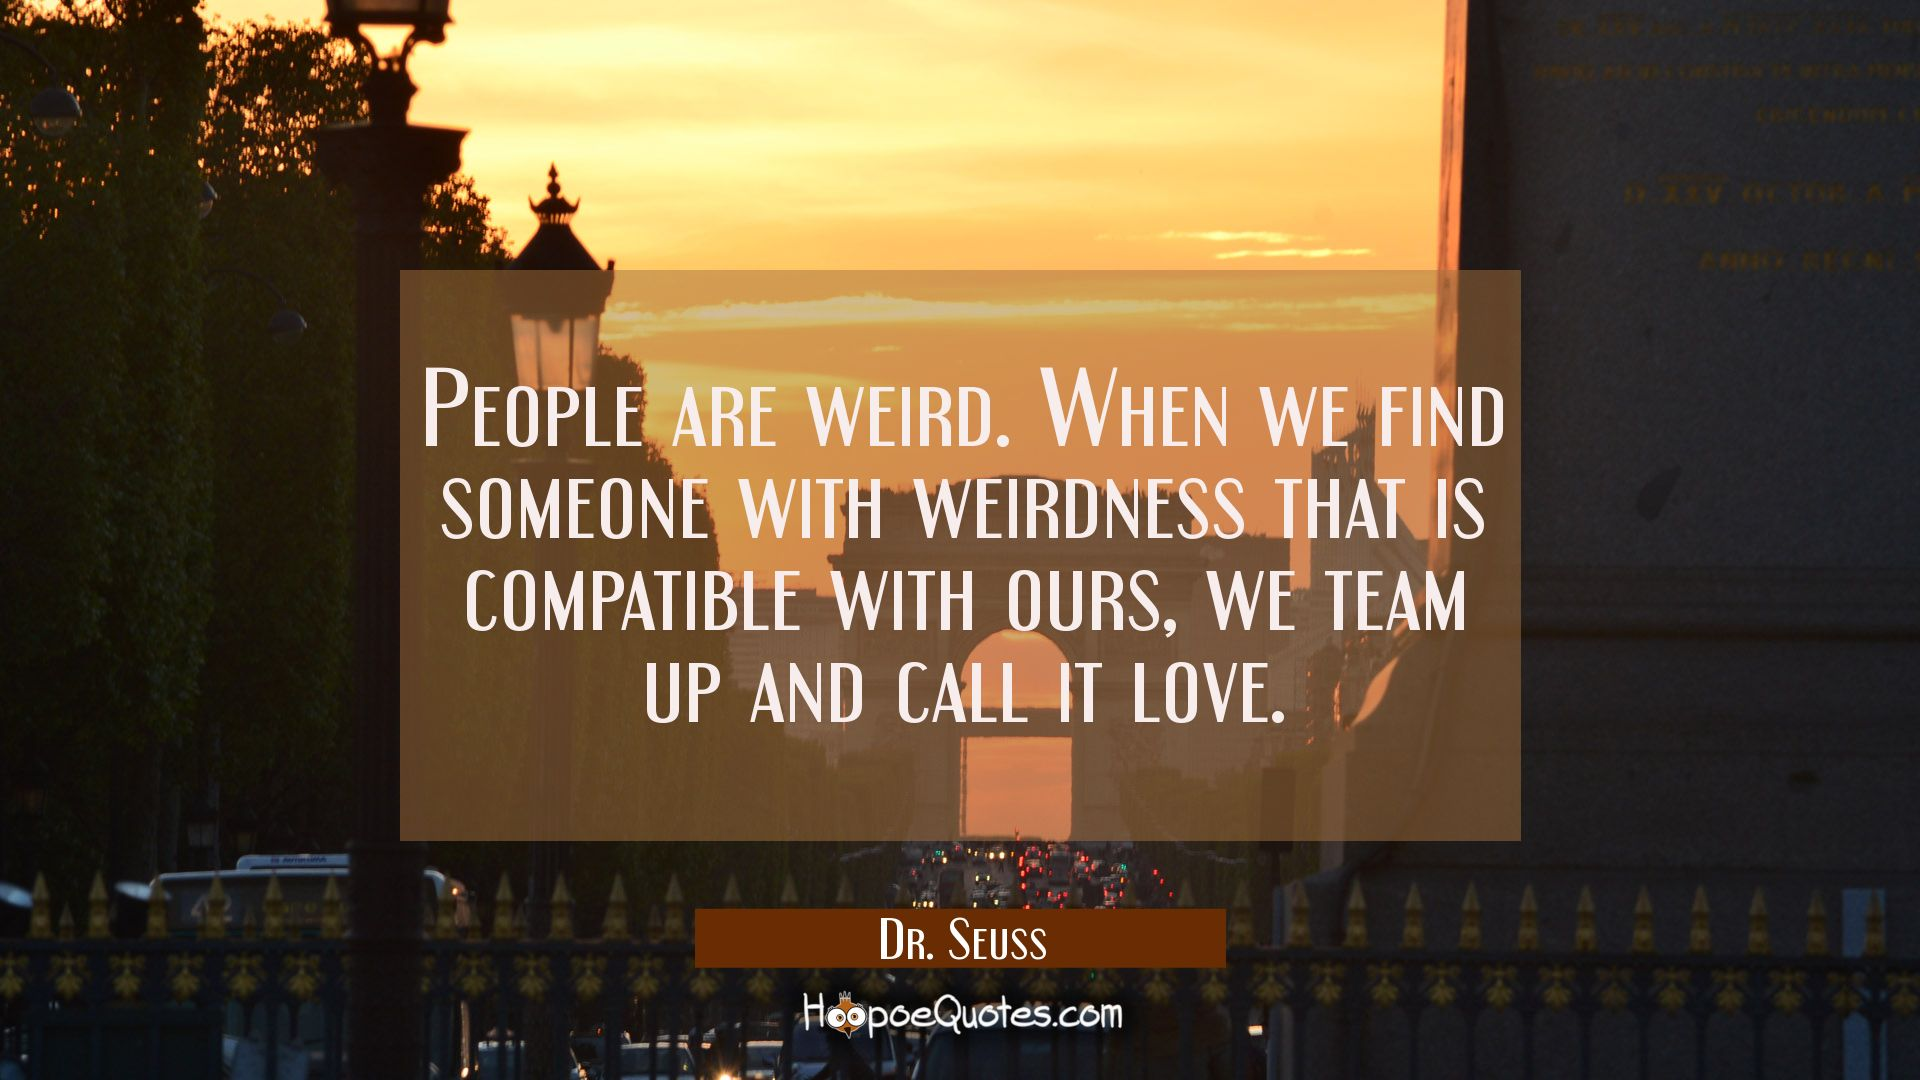 Love Quotes - Best sayings about Love - HoopoeQuotes